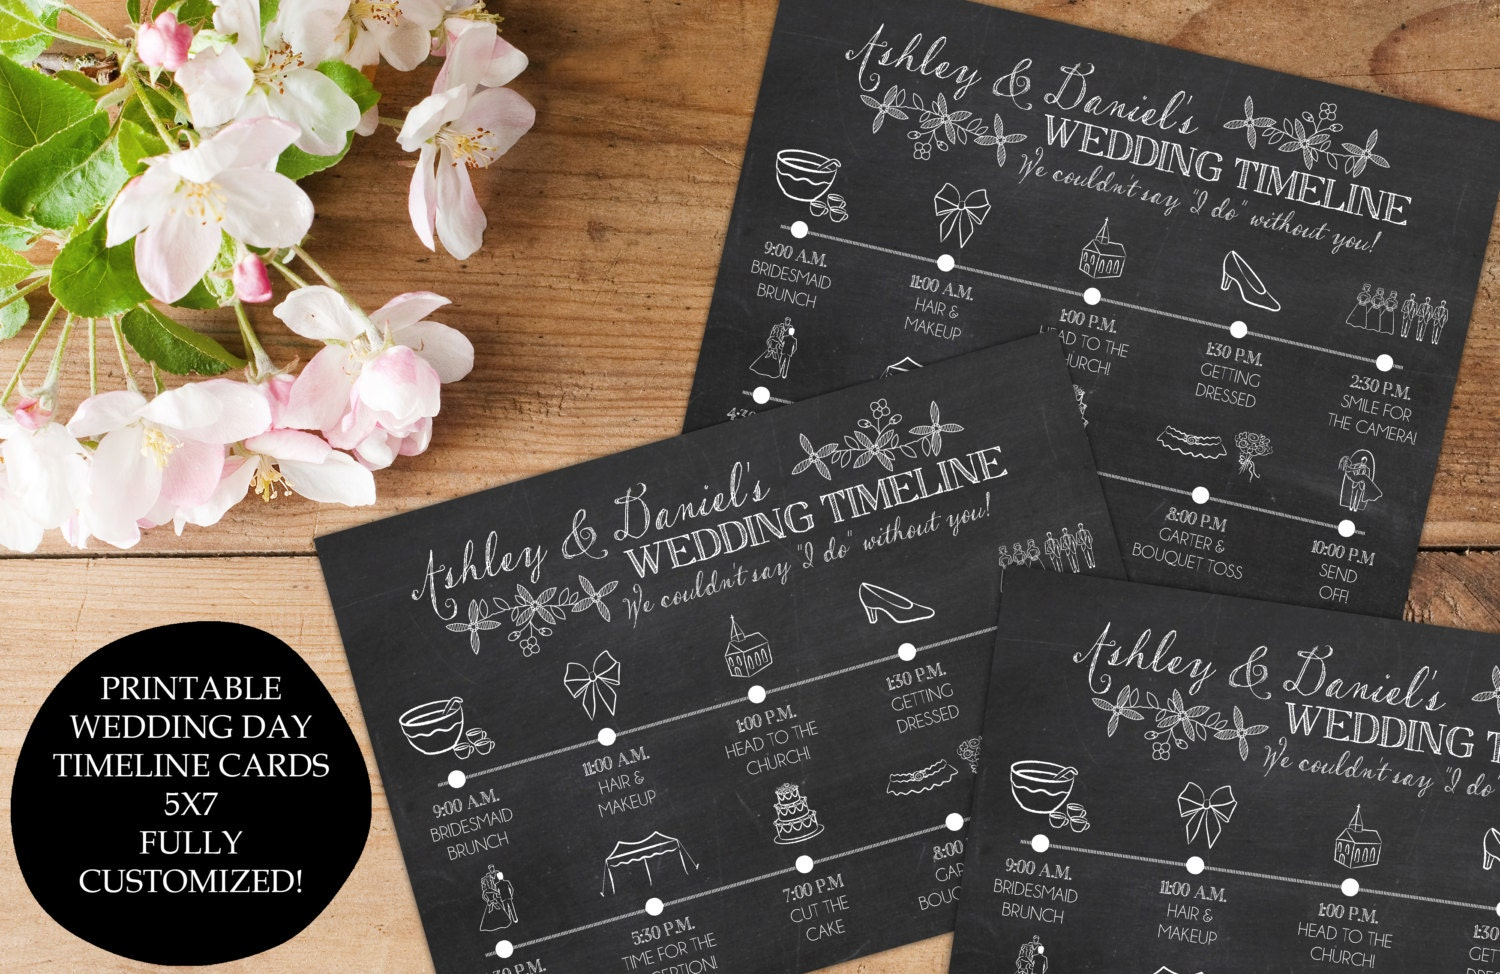 Wedding Day Timeline 2pm Ceremony: Wedding Day Timeline Itinerary Schedule For The Bridal Party